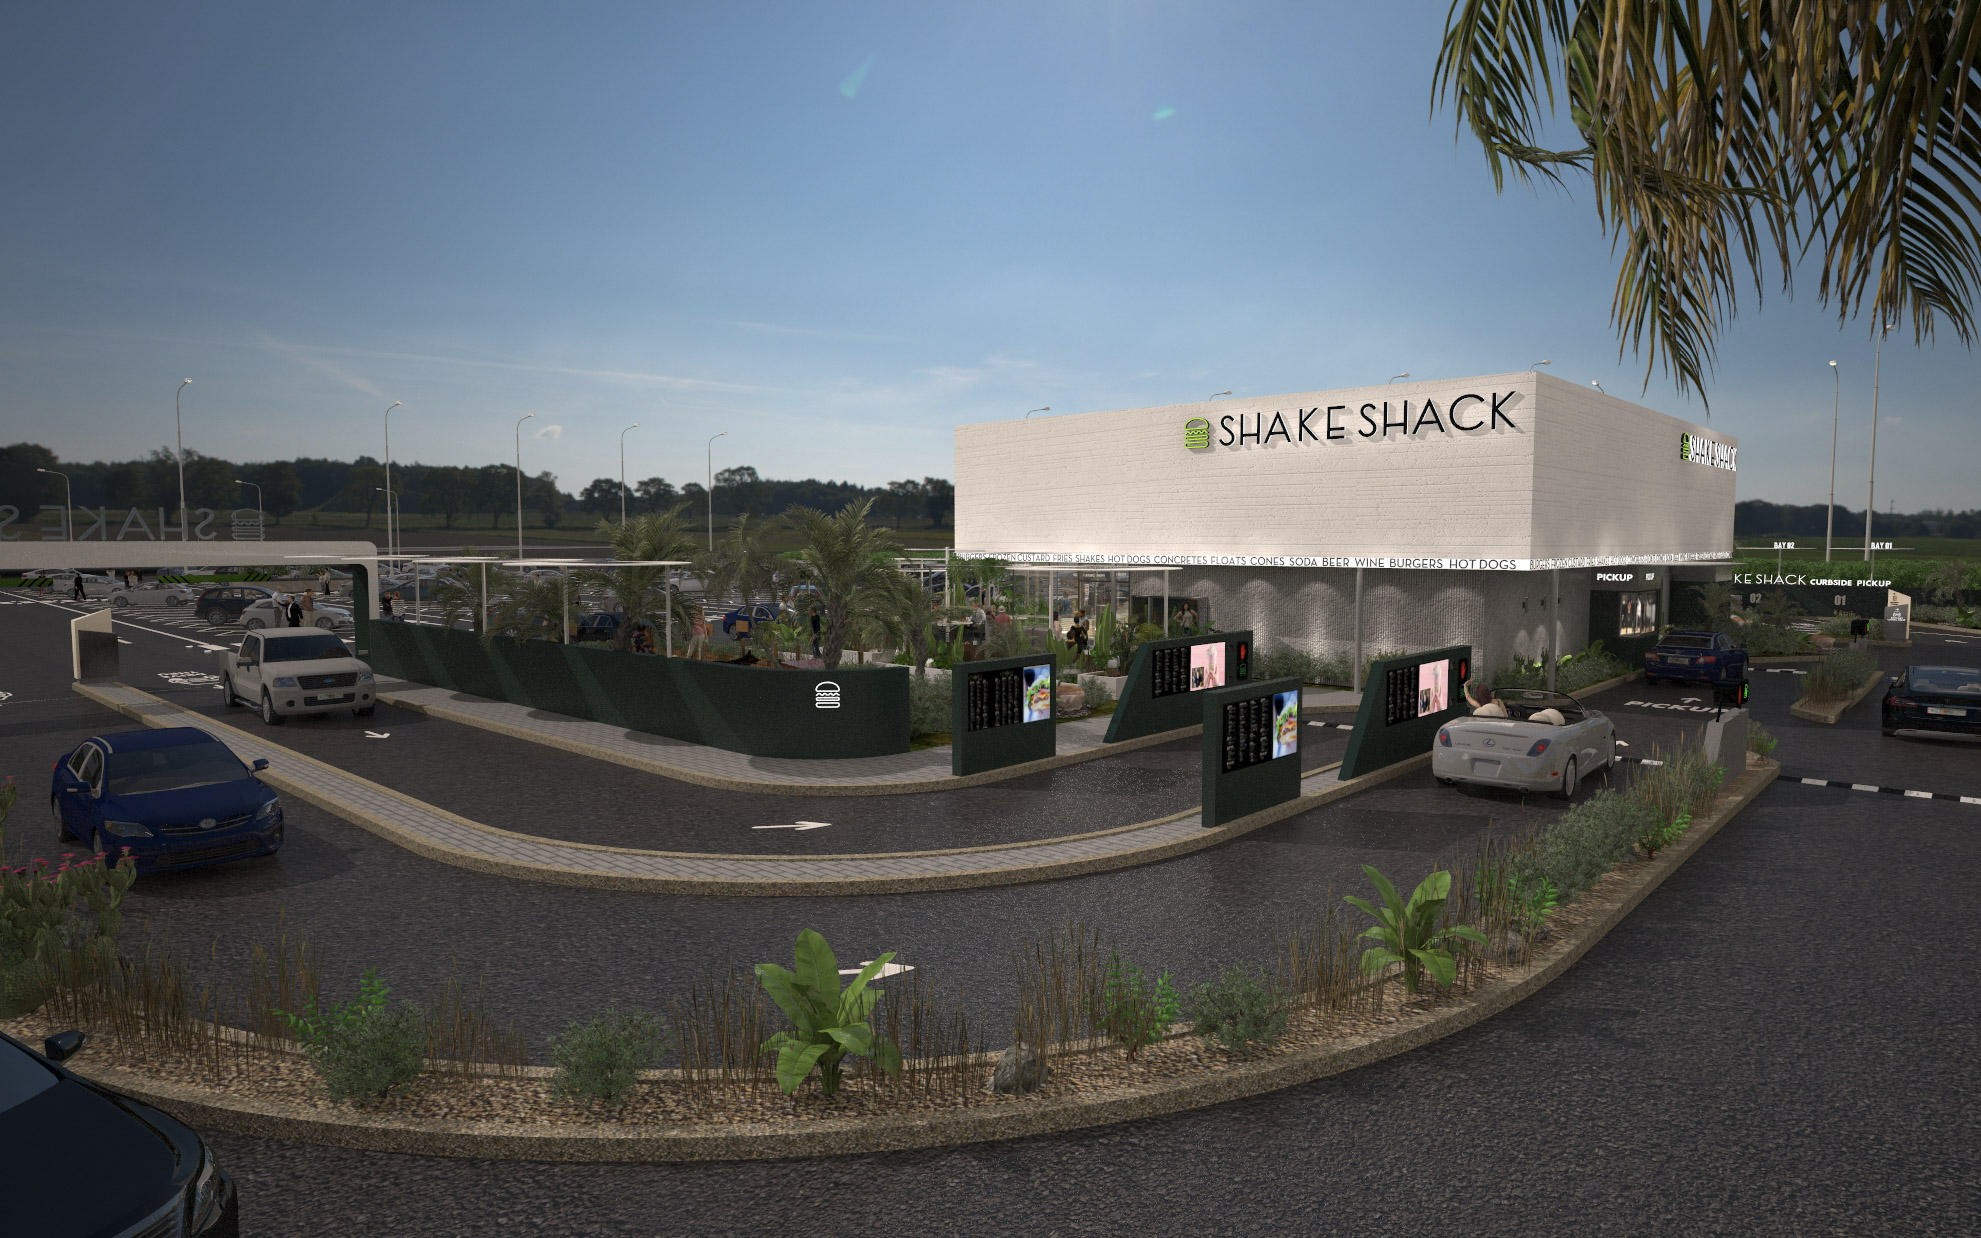 A rendering of the Shake Shack drive thru concept